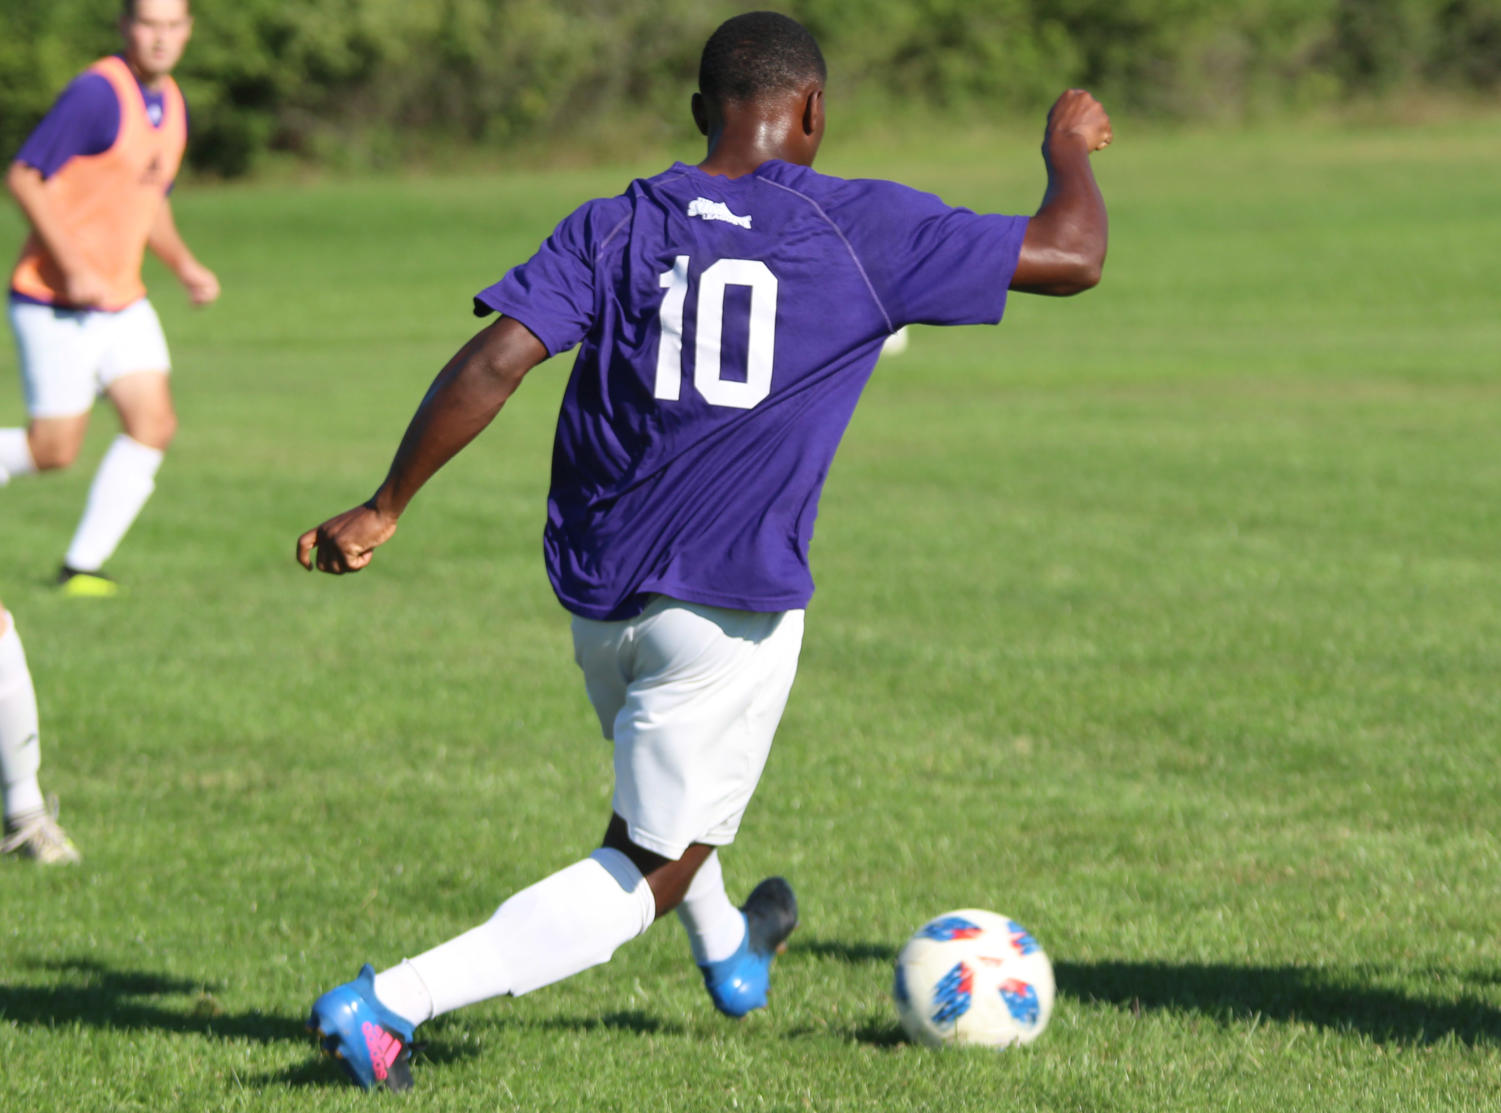 Daniel Kadima dribbles the ball in a training session for the Leathernecks.